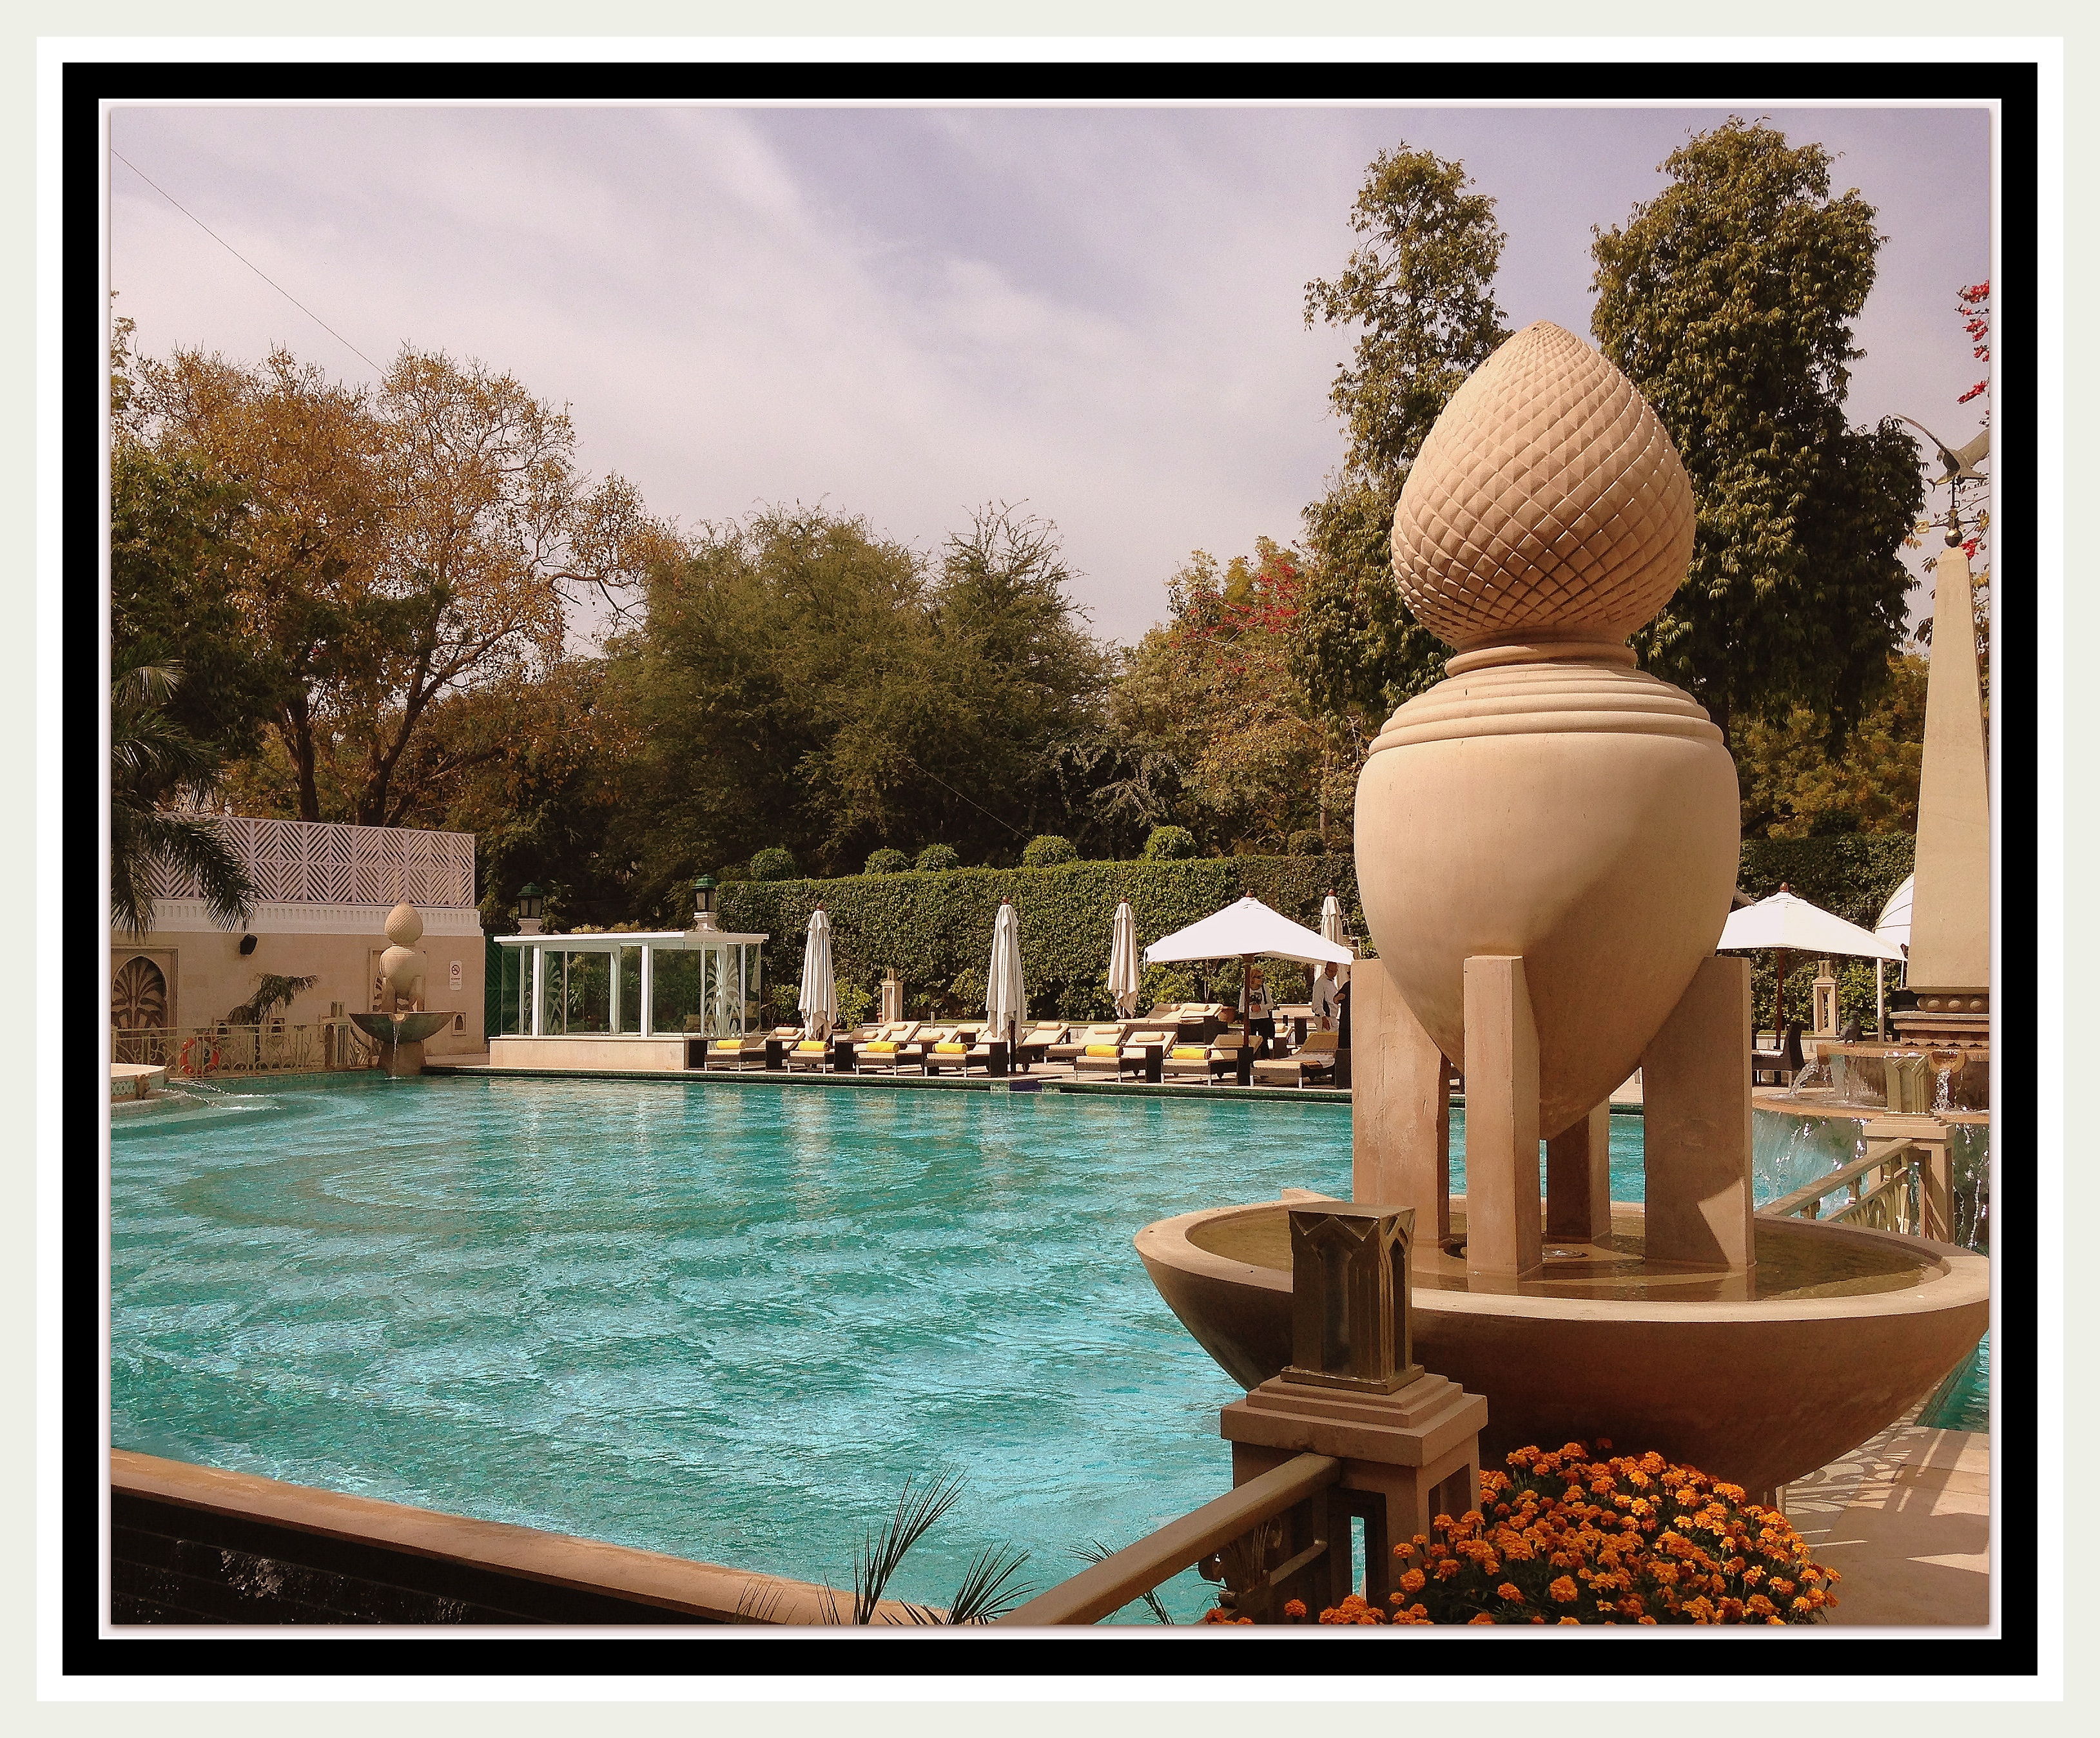 The Imperial Hotel New Delhi - Hotel Review